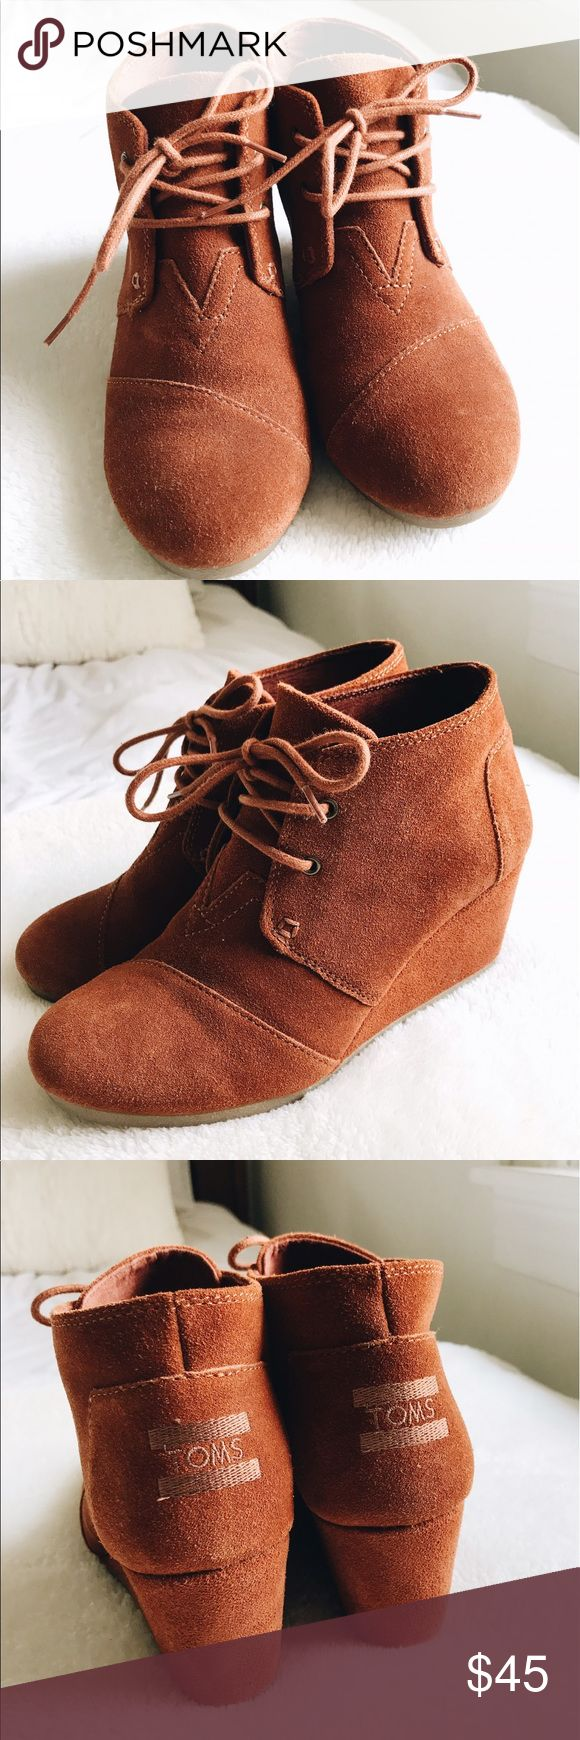 Tom's Burnt Orange Suede Desert Wedges These are a lightly worn pair of Tom's wedges/booties! Since they're Tom's, they're easily the most comfortable heels I've ever worn. These would be perfect for a fall outfit! Toms Shoes Wedges